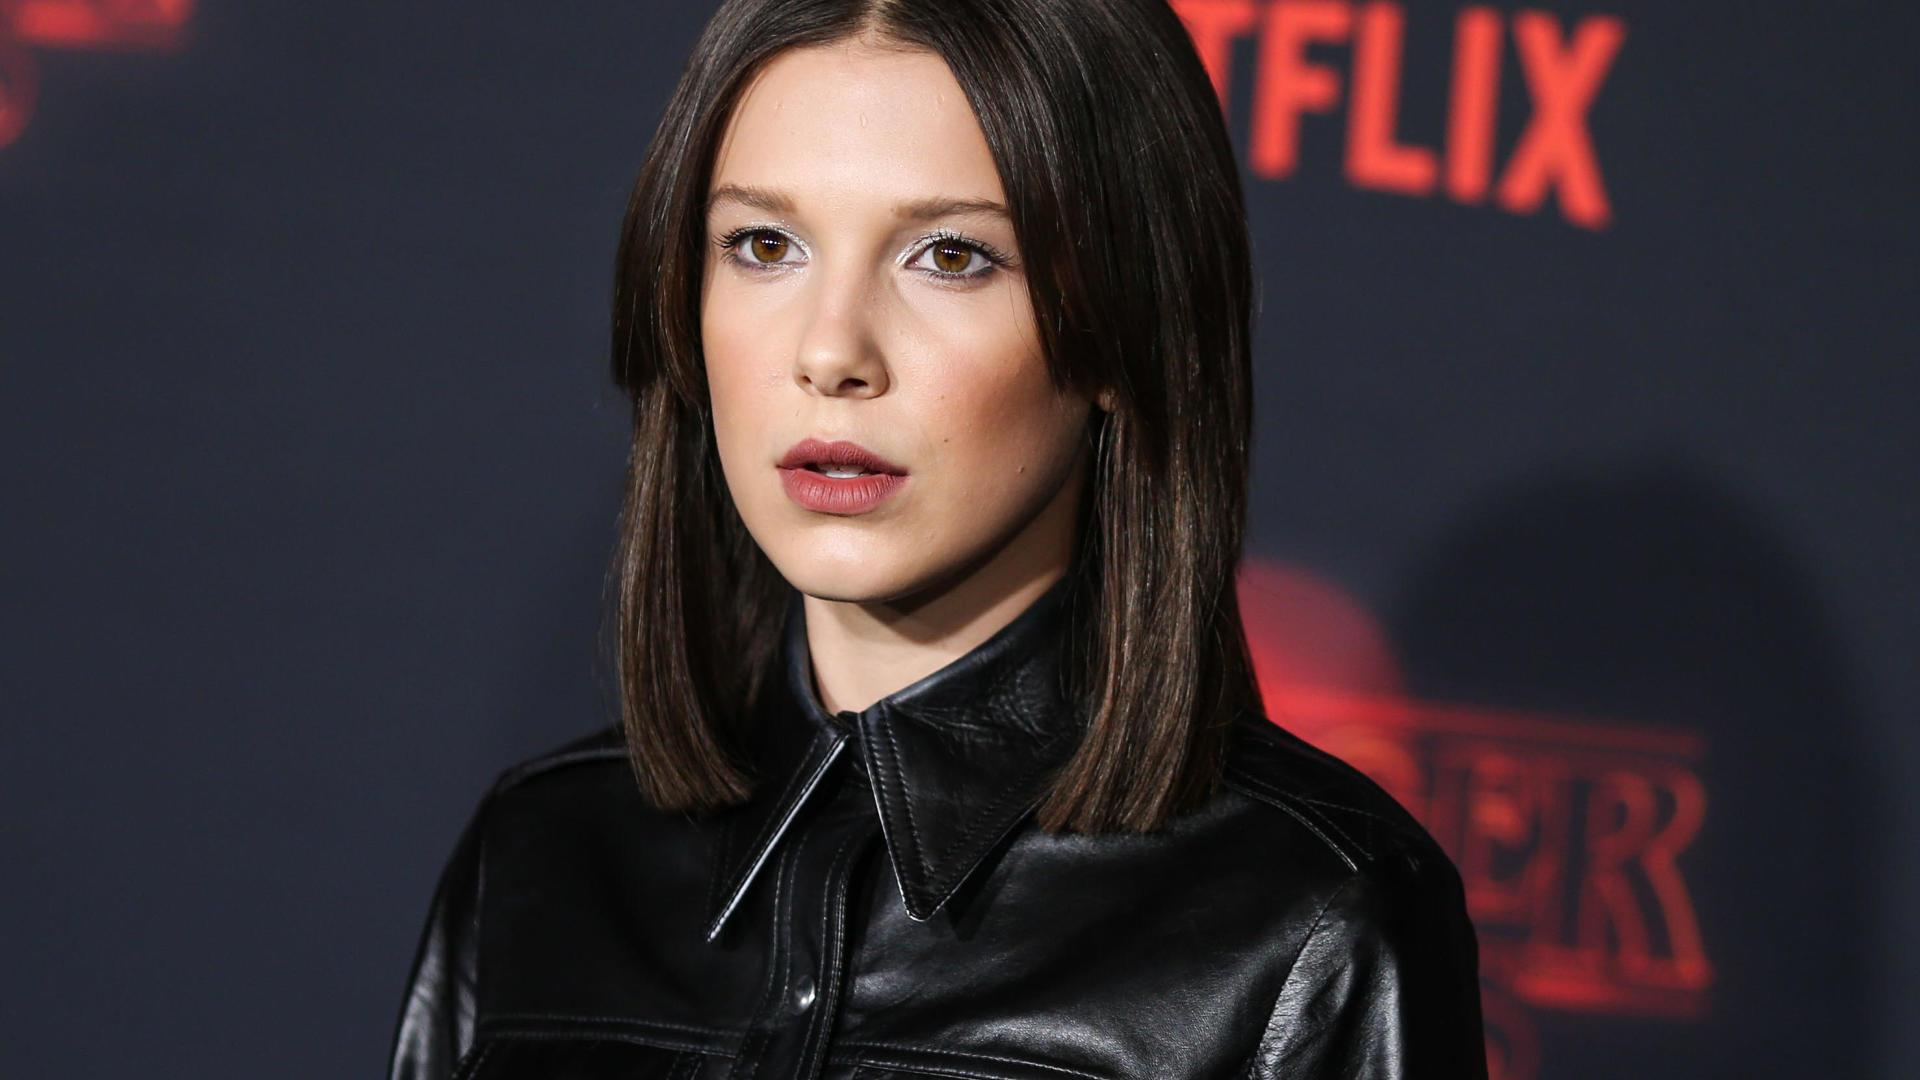 1920x1080 Millie Bobby Brown Stranger Things Event 2017 1080P Laptop